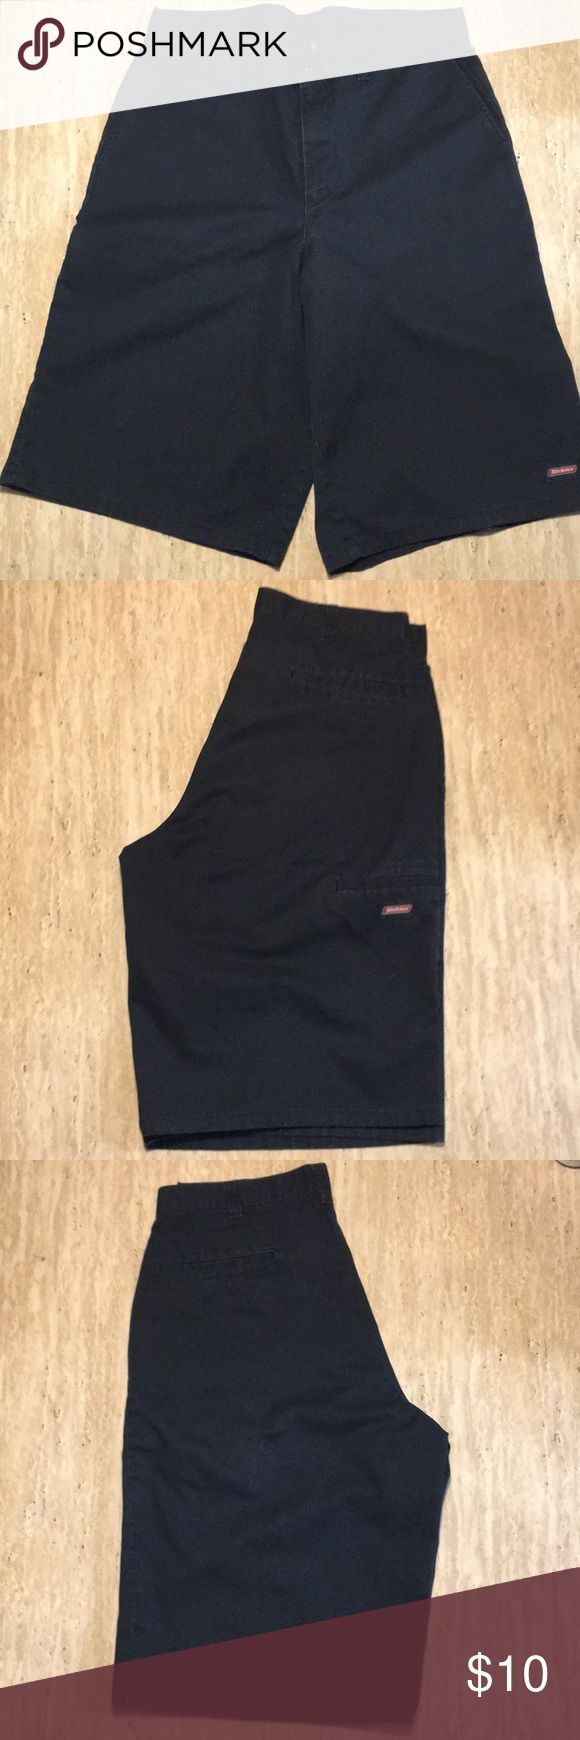 Men's Dickies short Men's Black Dickies Shorts. Gently worn and wash. Good conditions. Dickies Shorts Flat Front